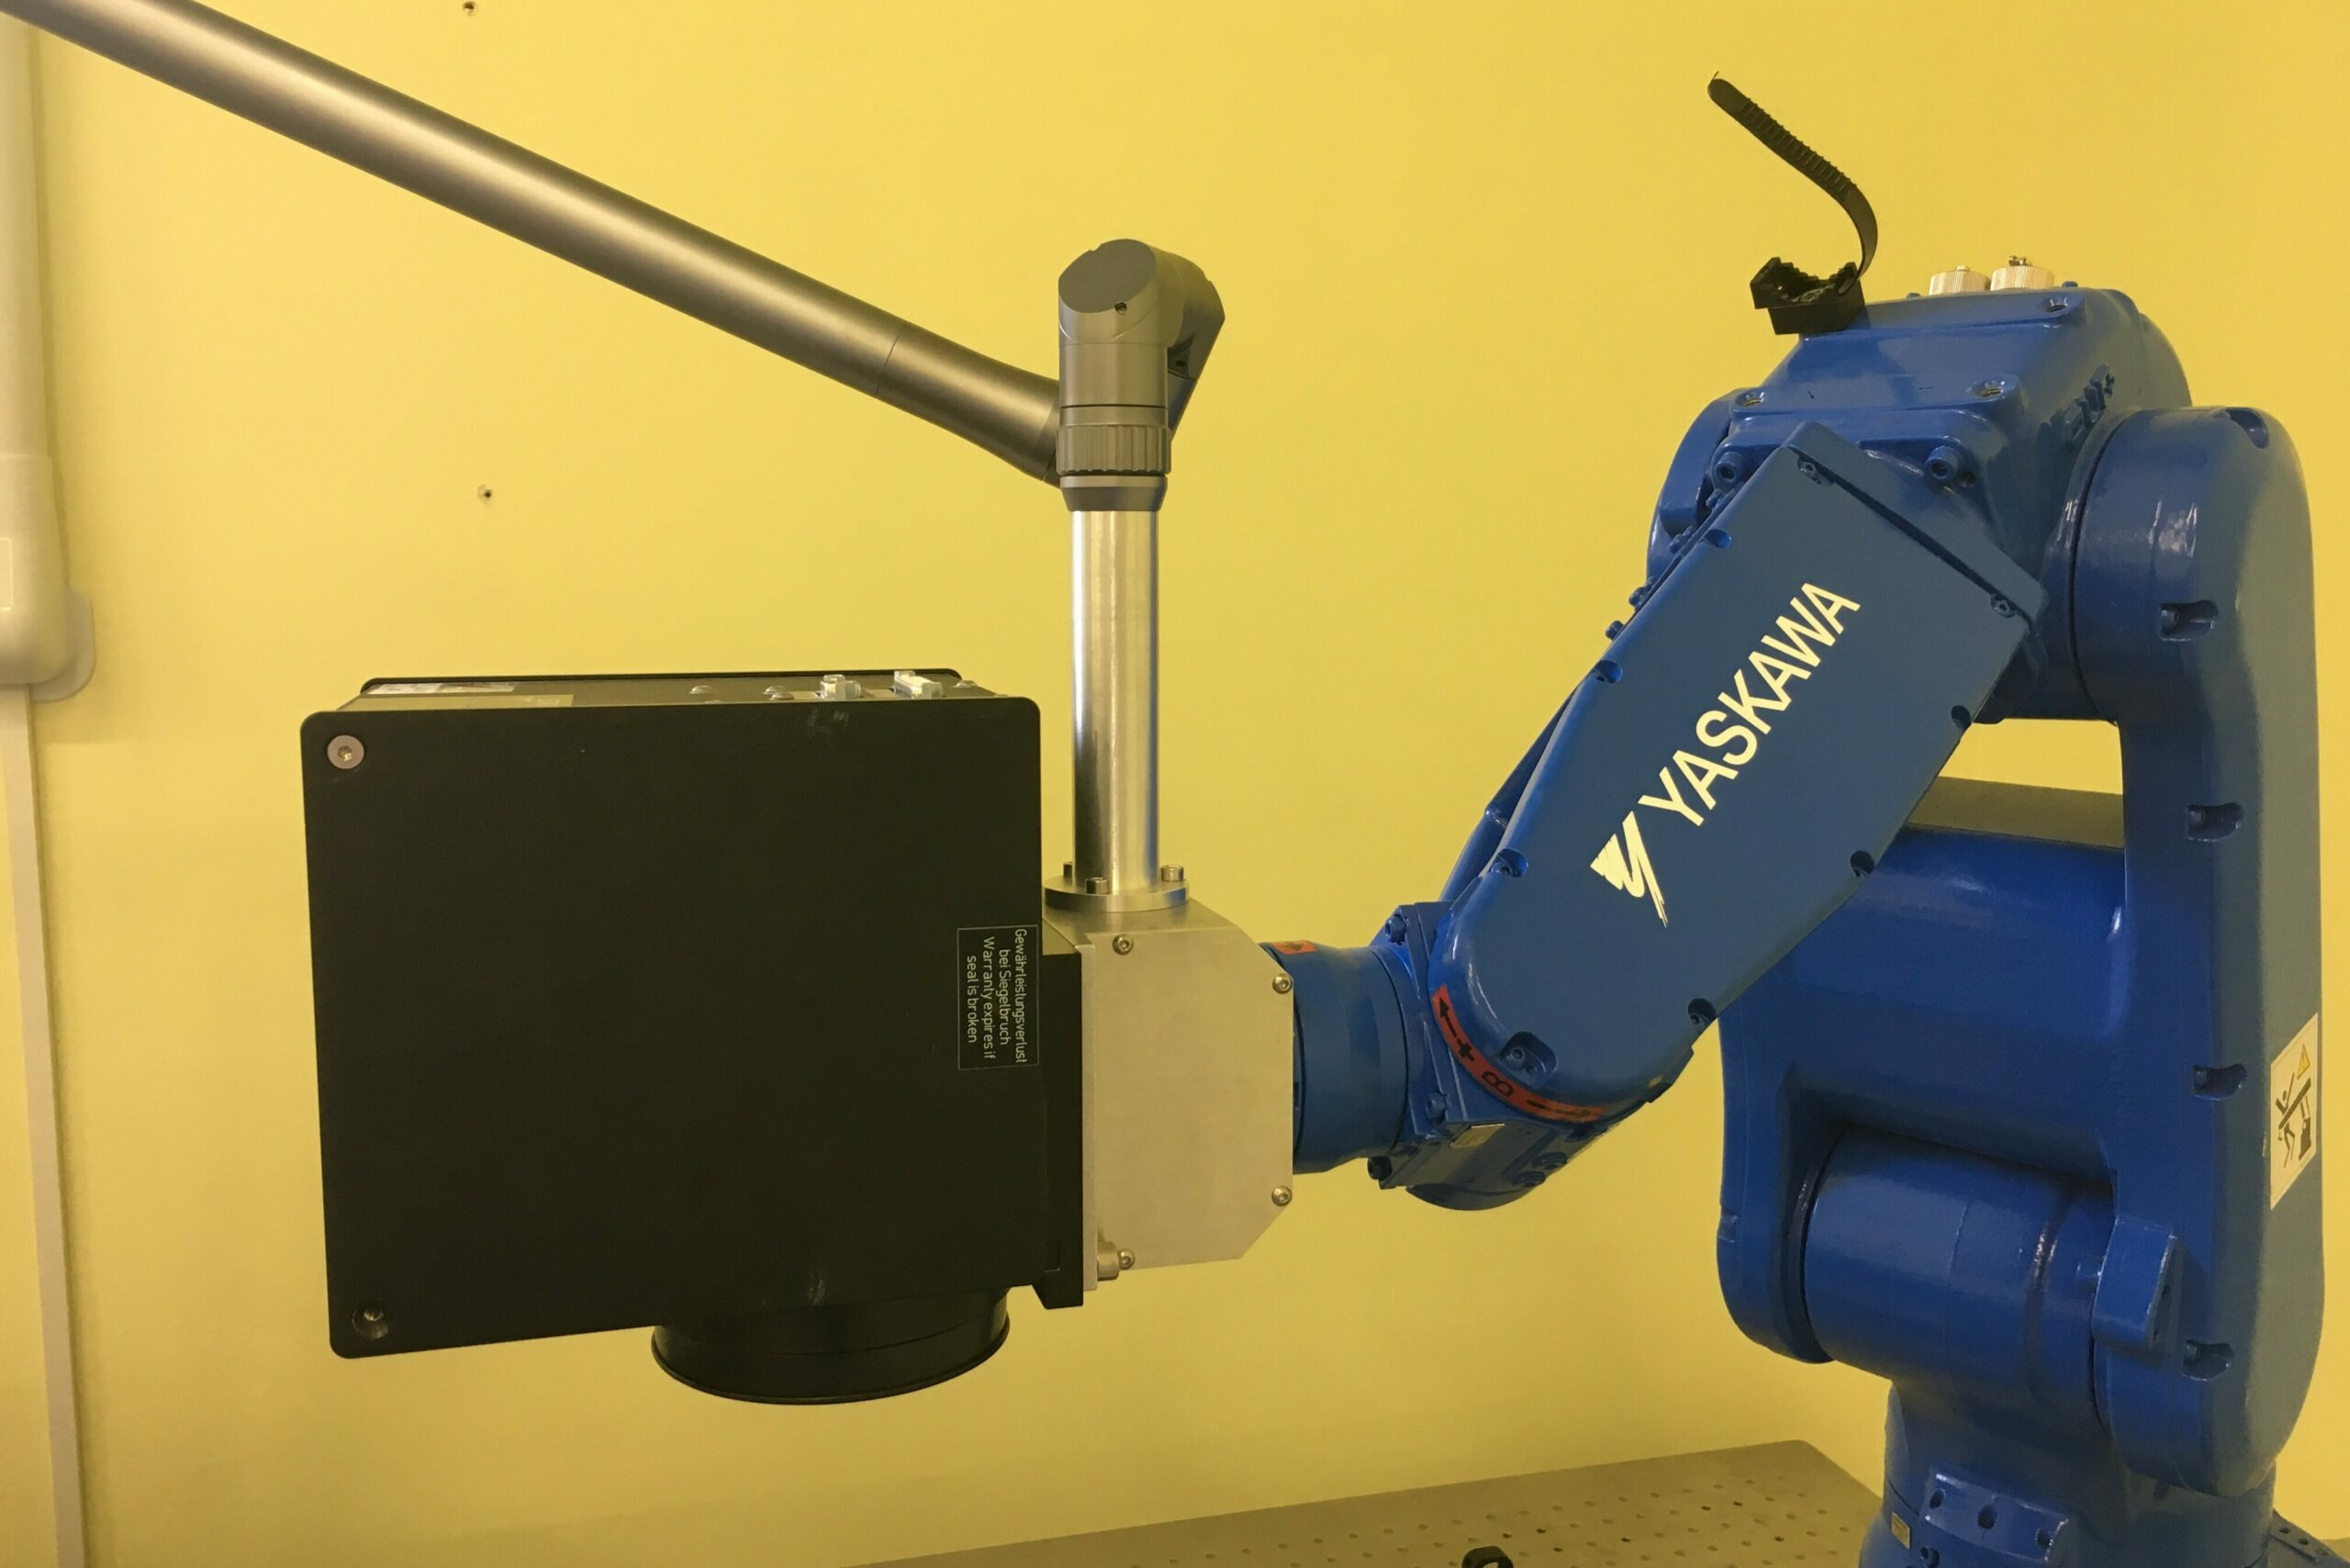 Image of robot Galvo scanner motion control application